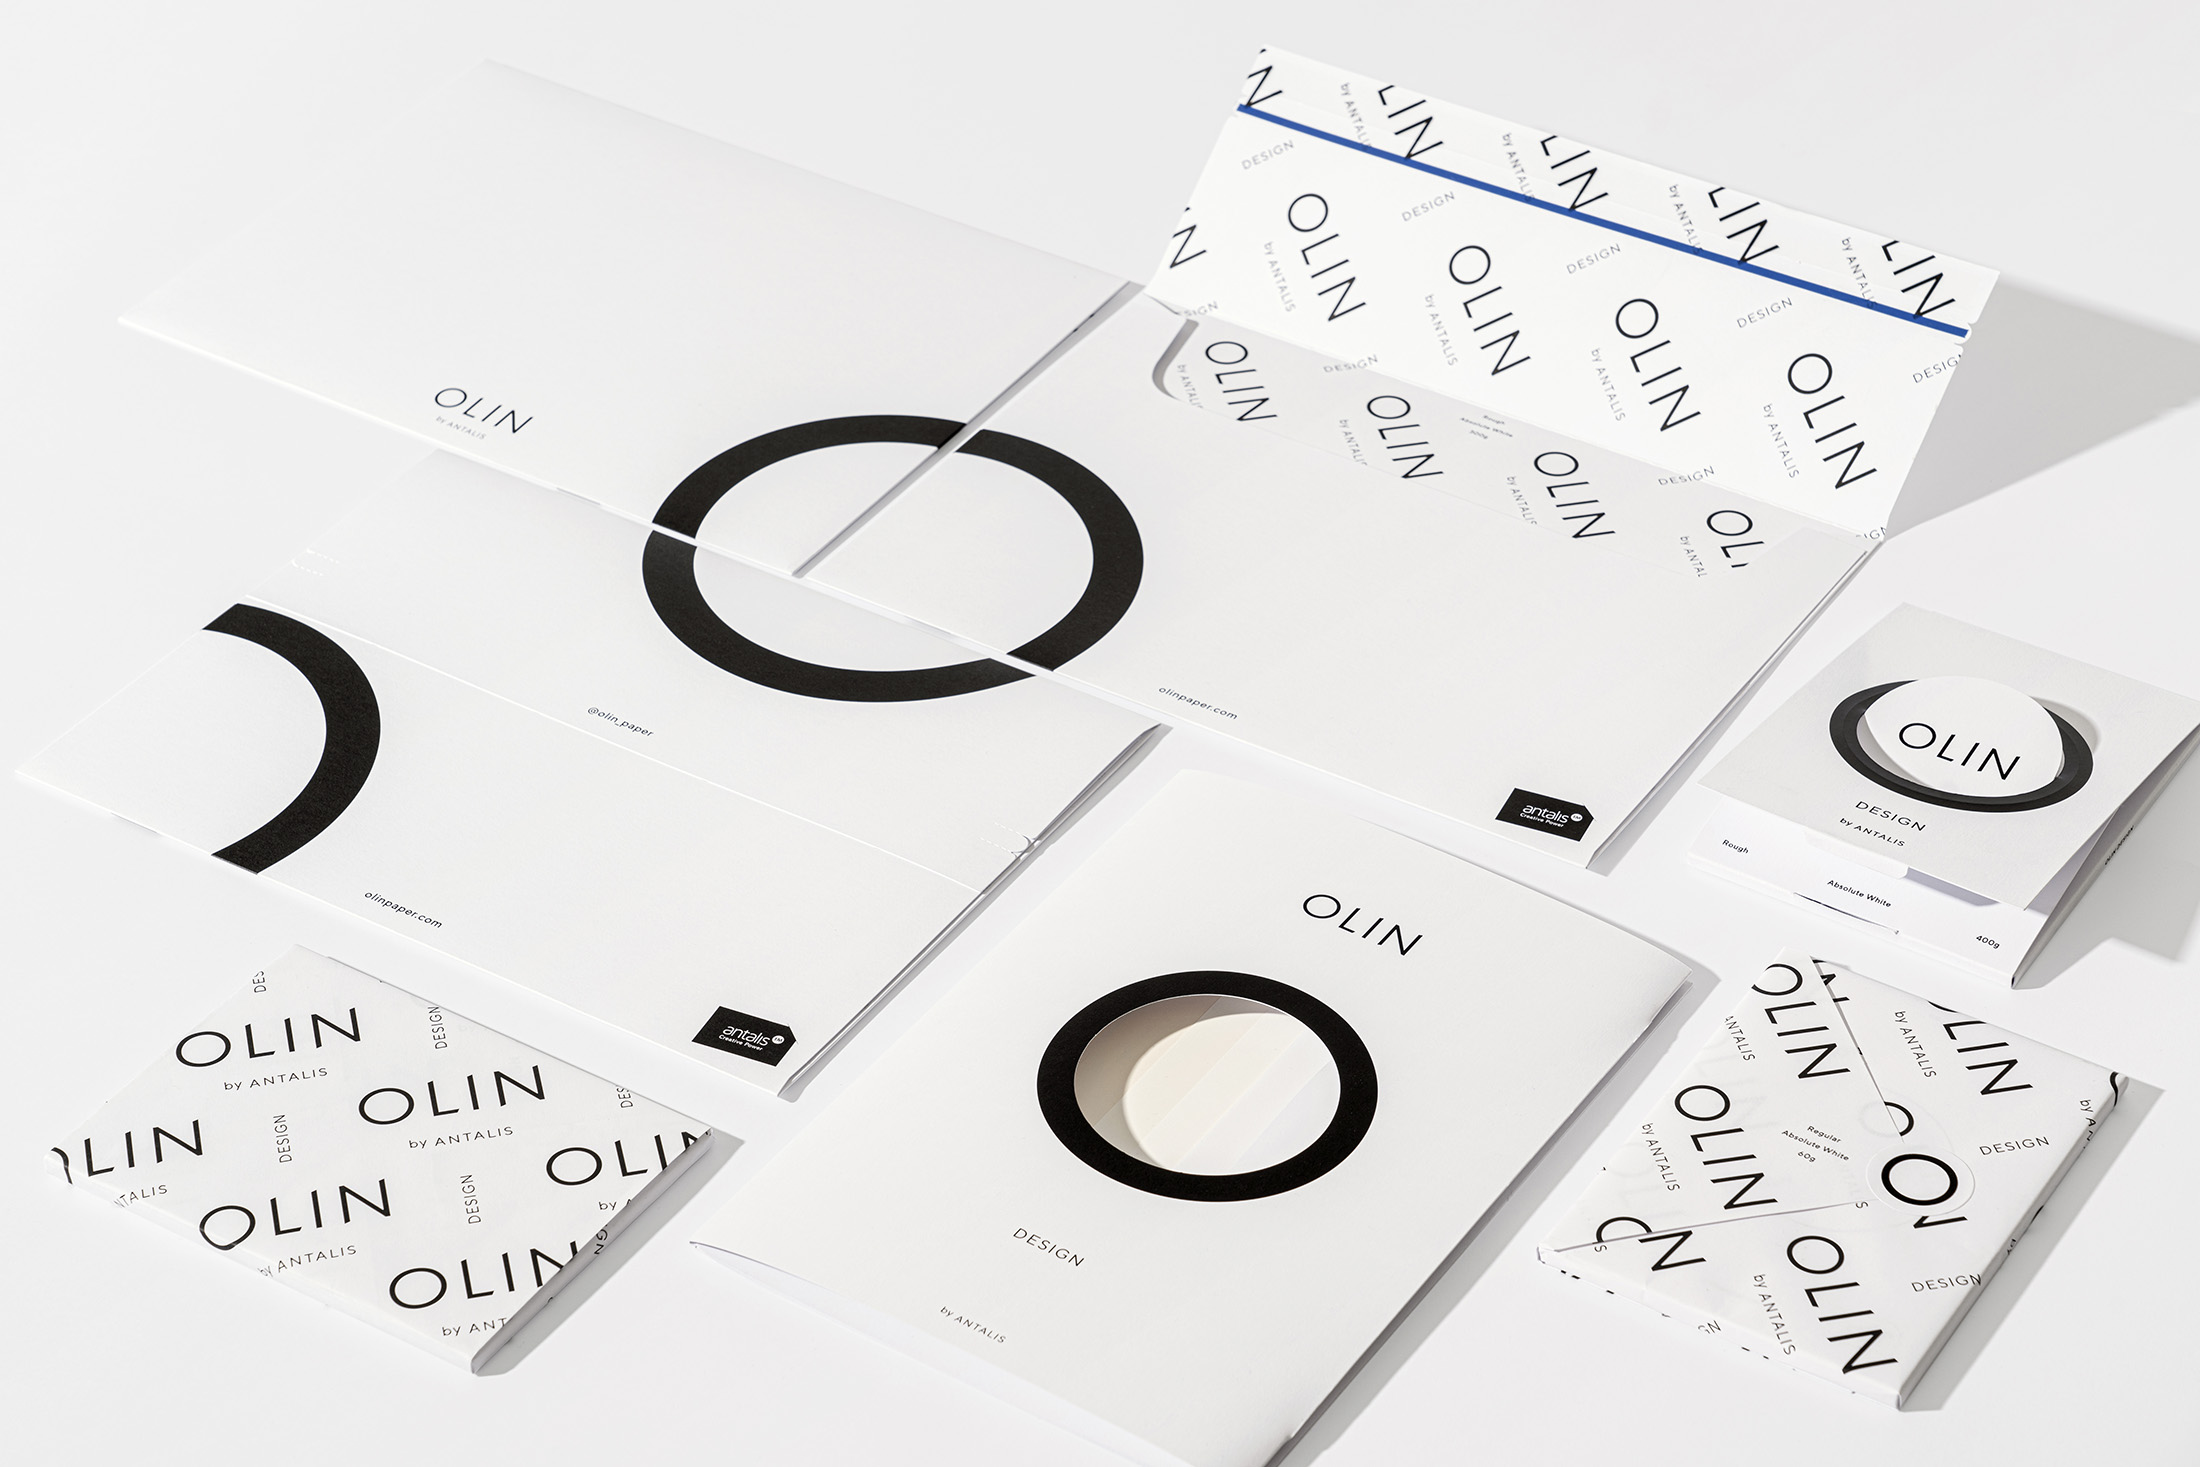 New Brand Identity for Paper Range Olin by Design & Practice